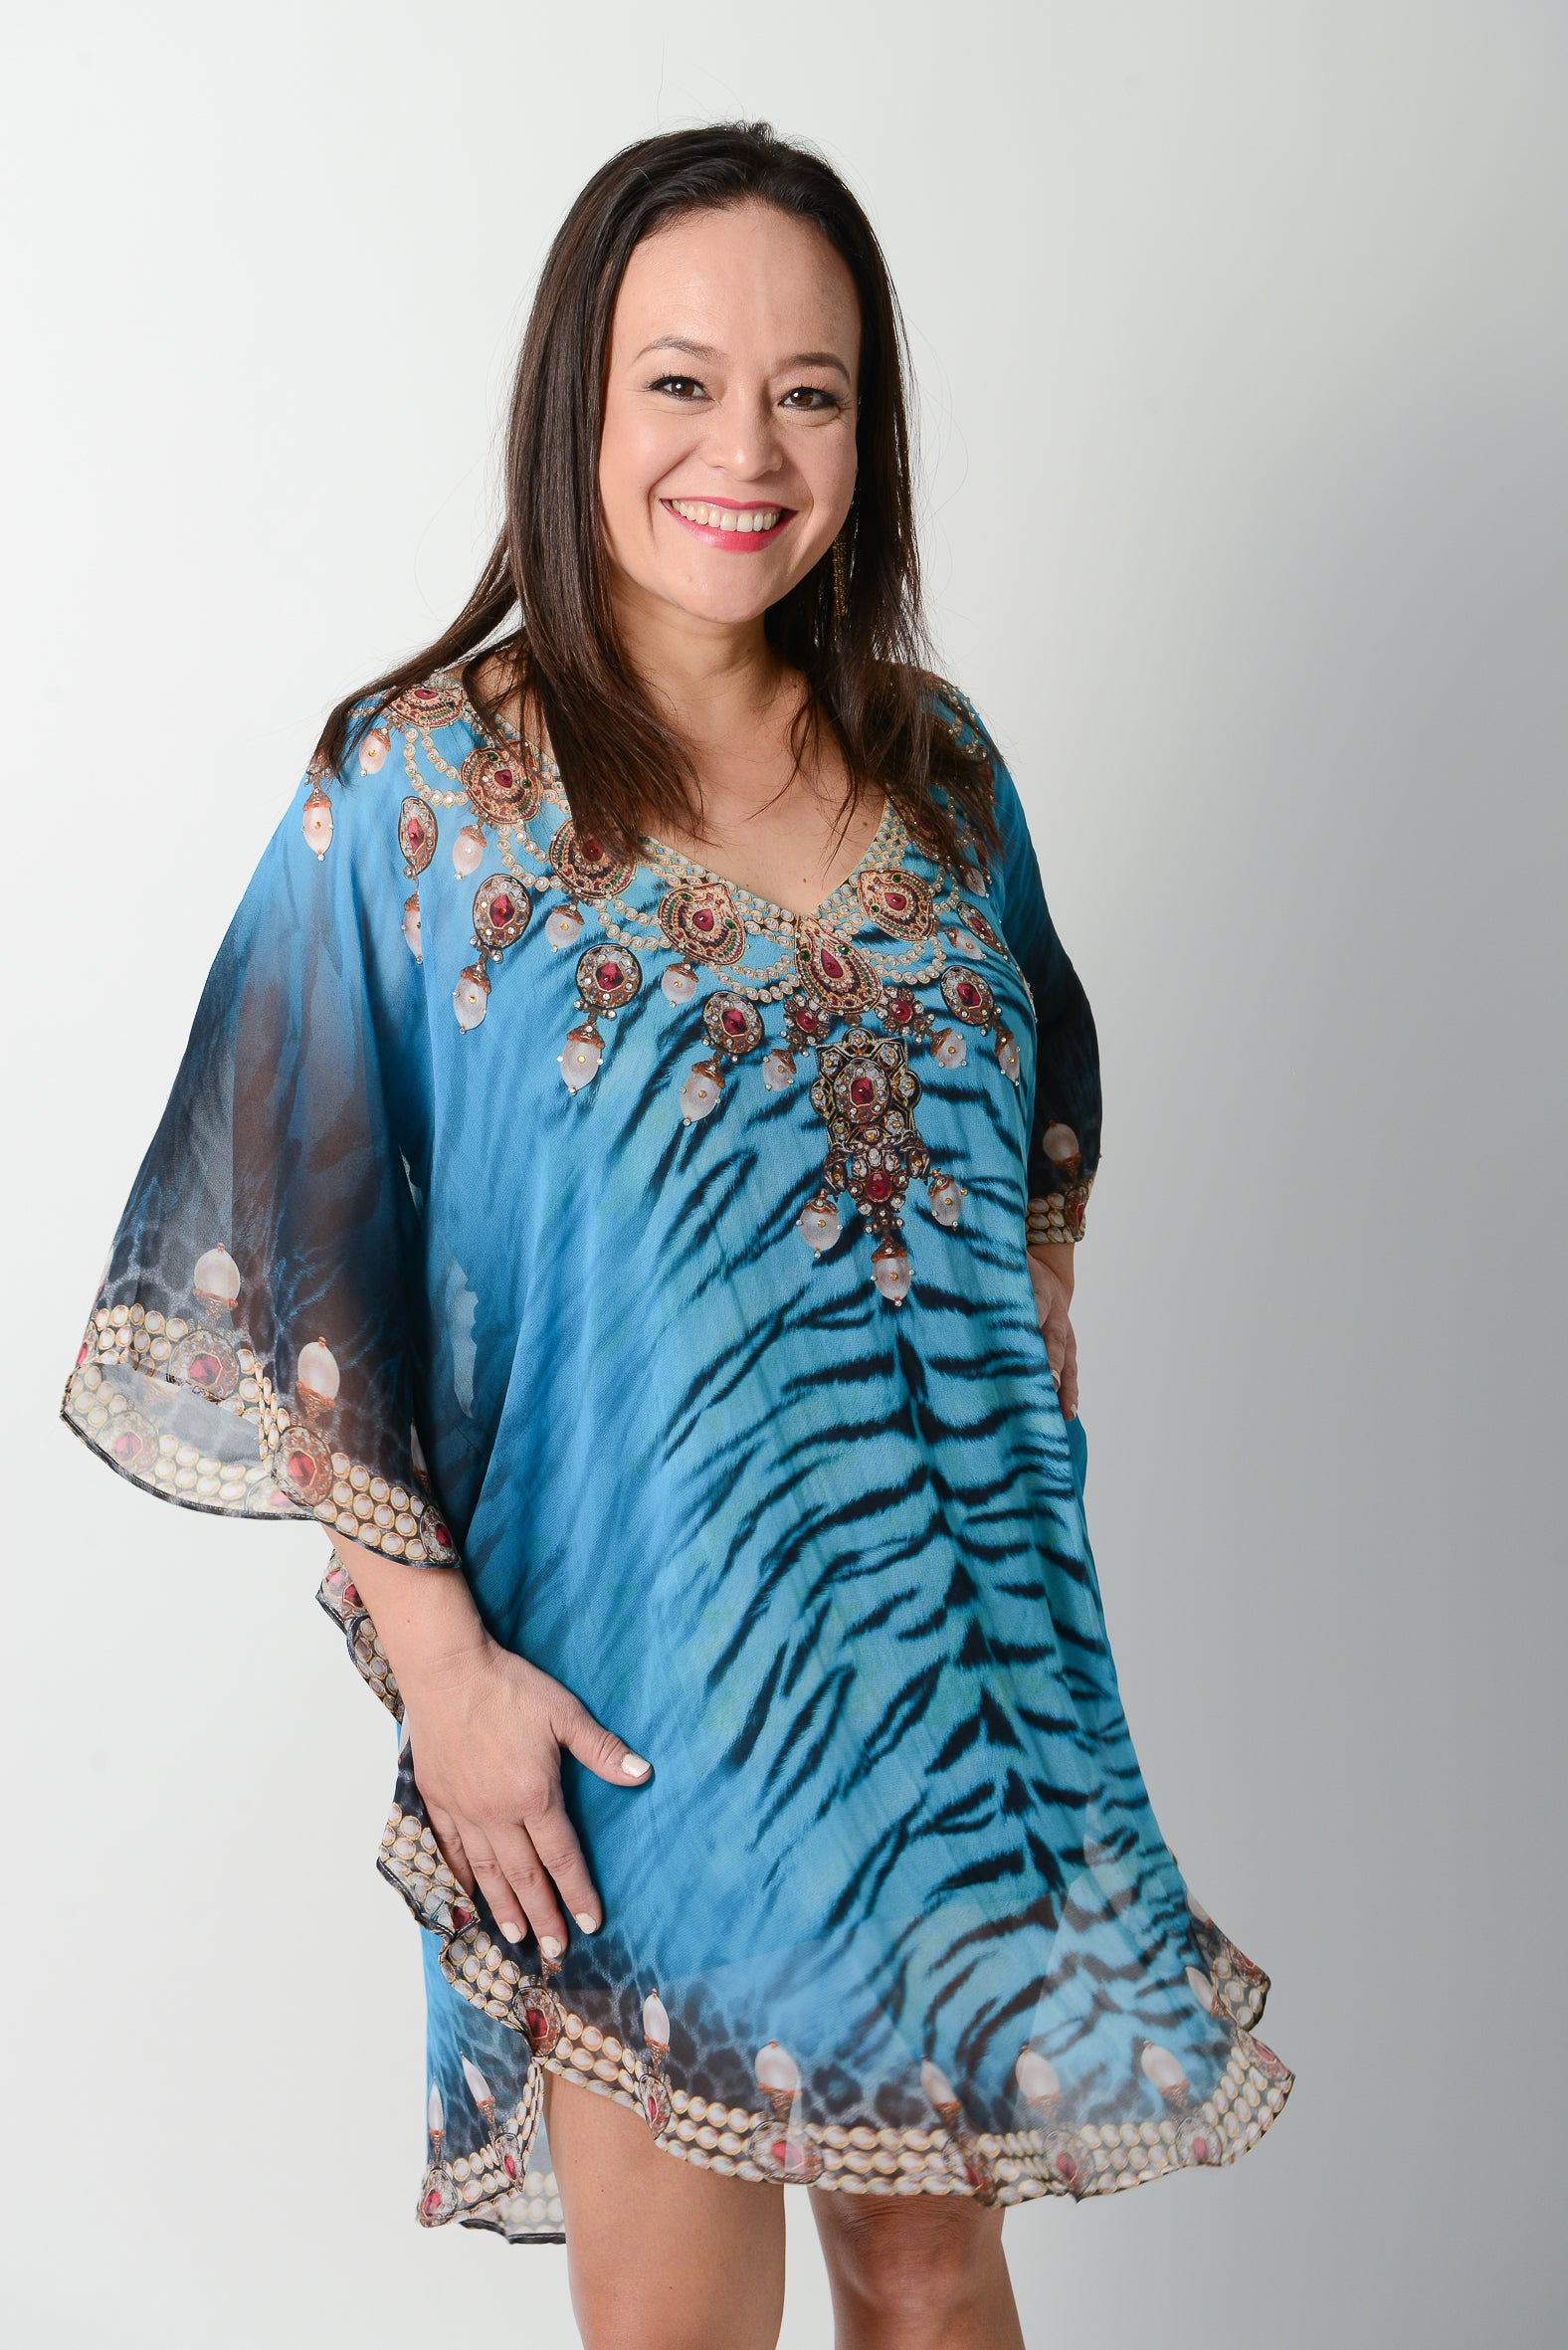 Exotic Blue Tiger Balloon Kaftan - 50% OFF - GlamTanz Kaftans & Resortwear Sydney Australia